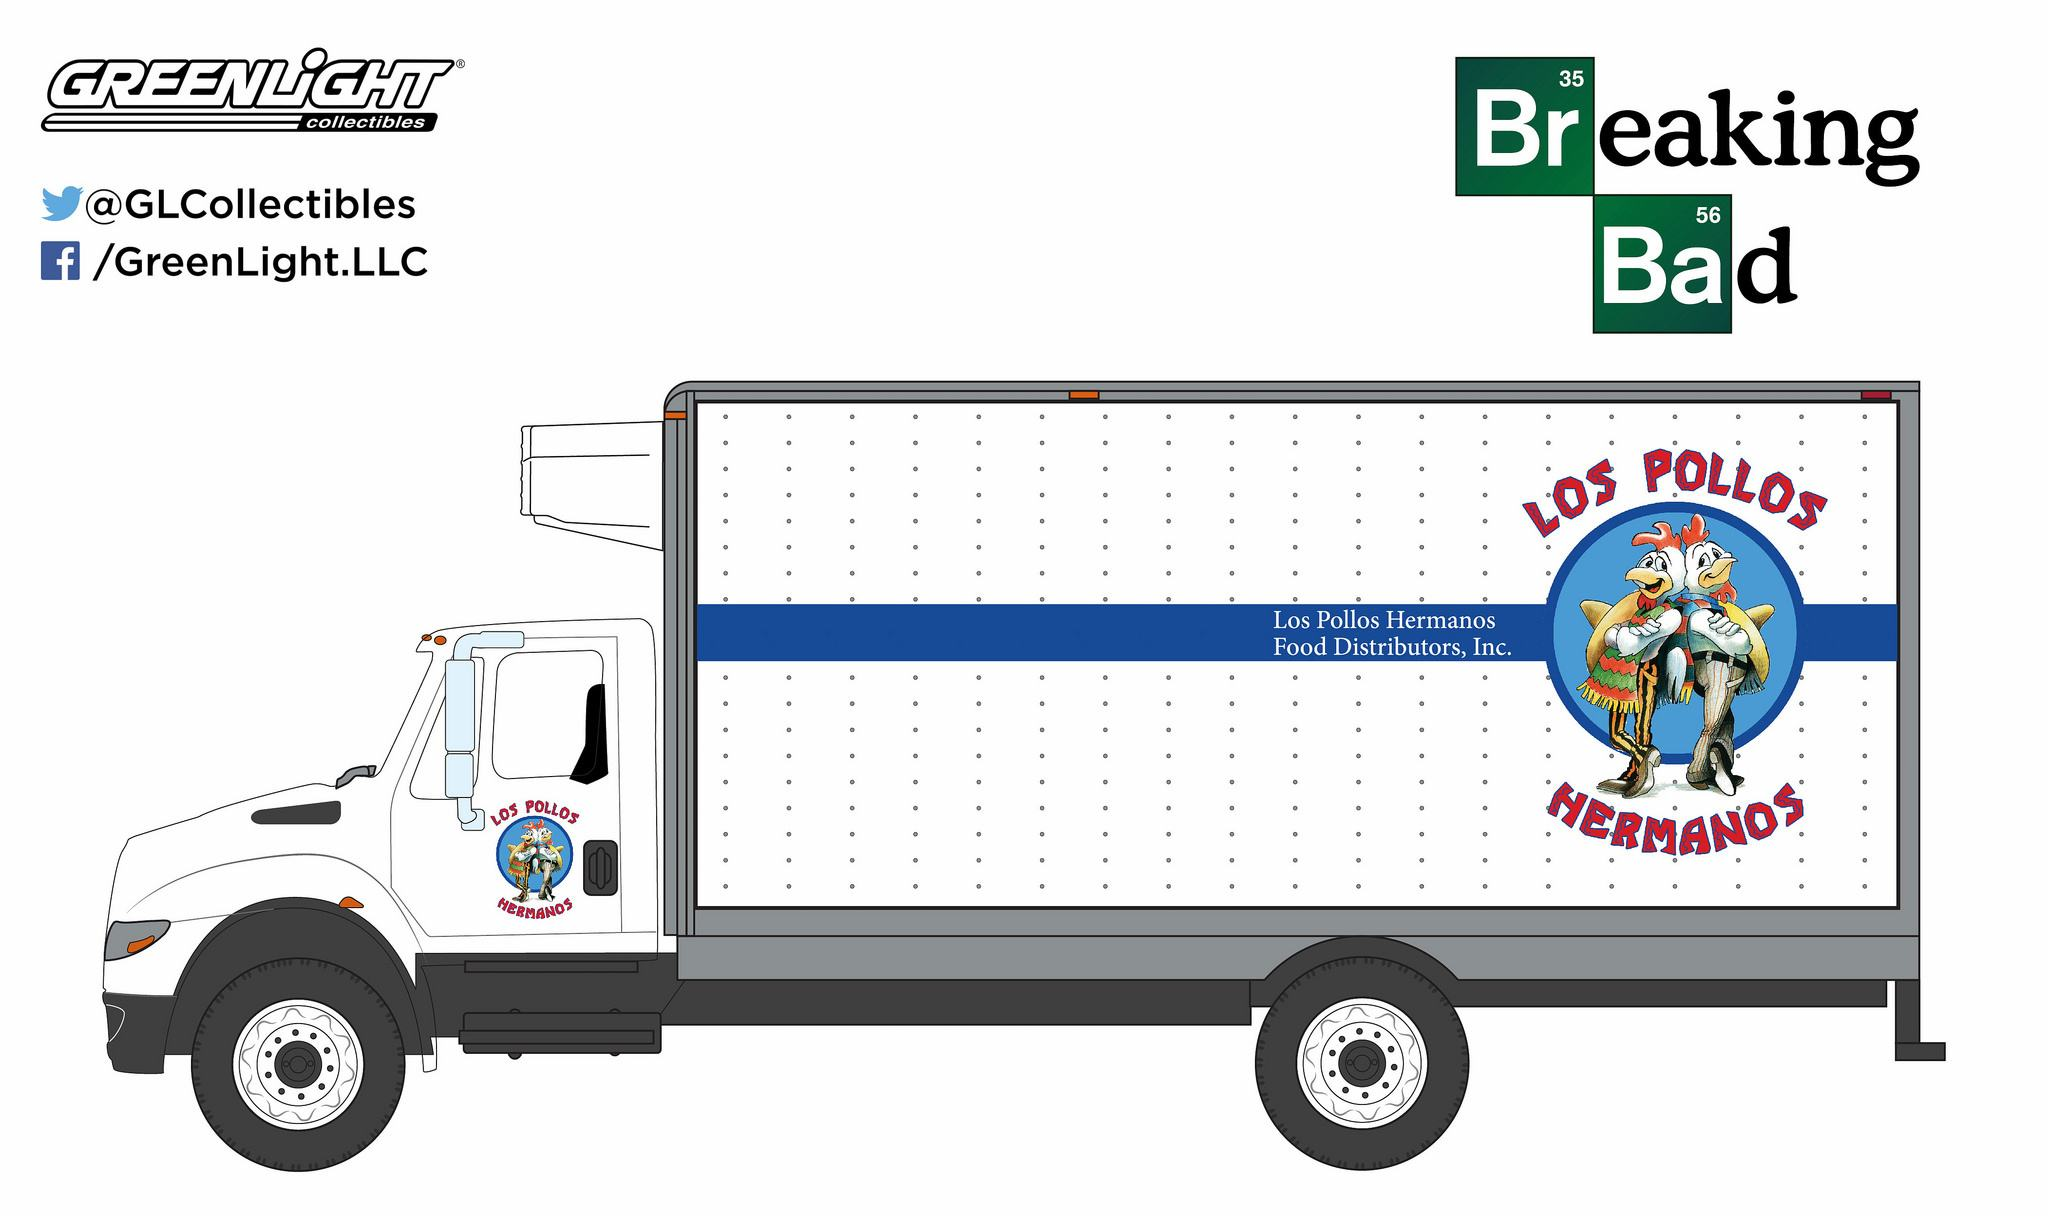 Caminhao-Los-Pollos-Hermanos-International-Box-Truck-1-64-Scale-Breaking-Bad-04